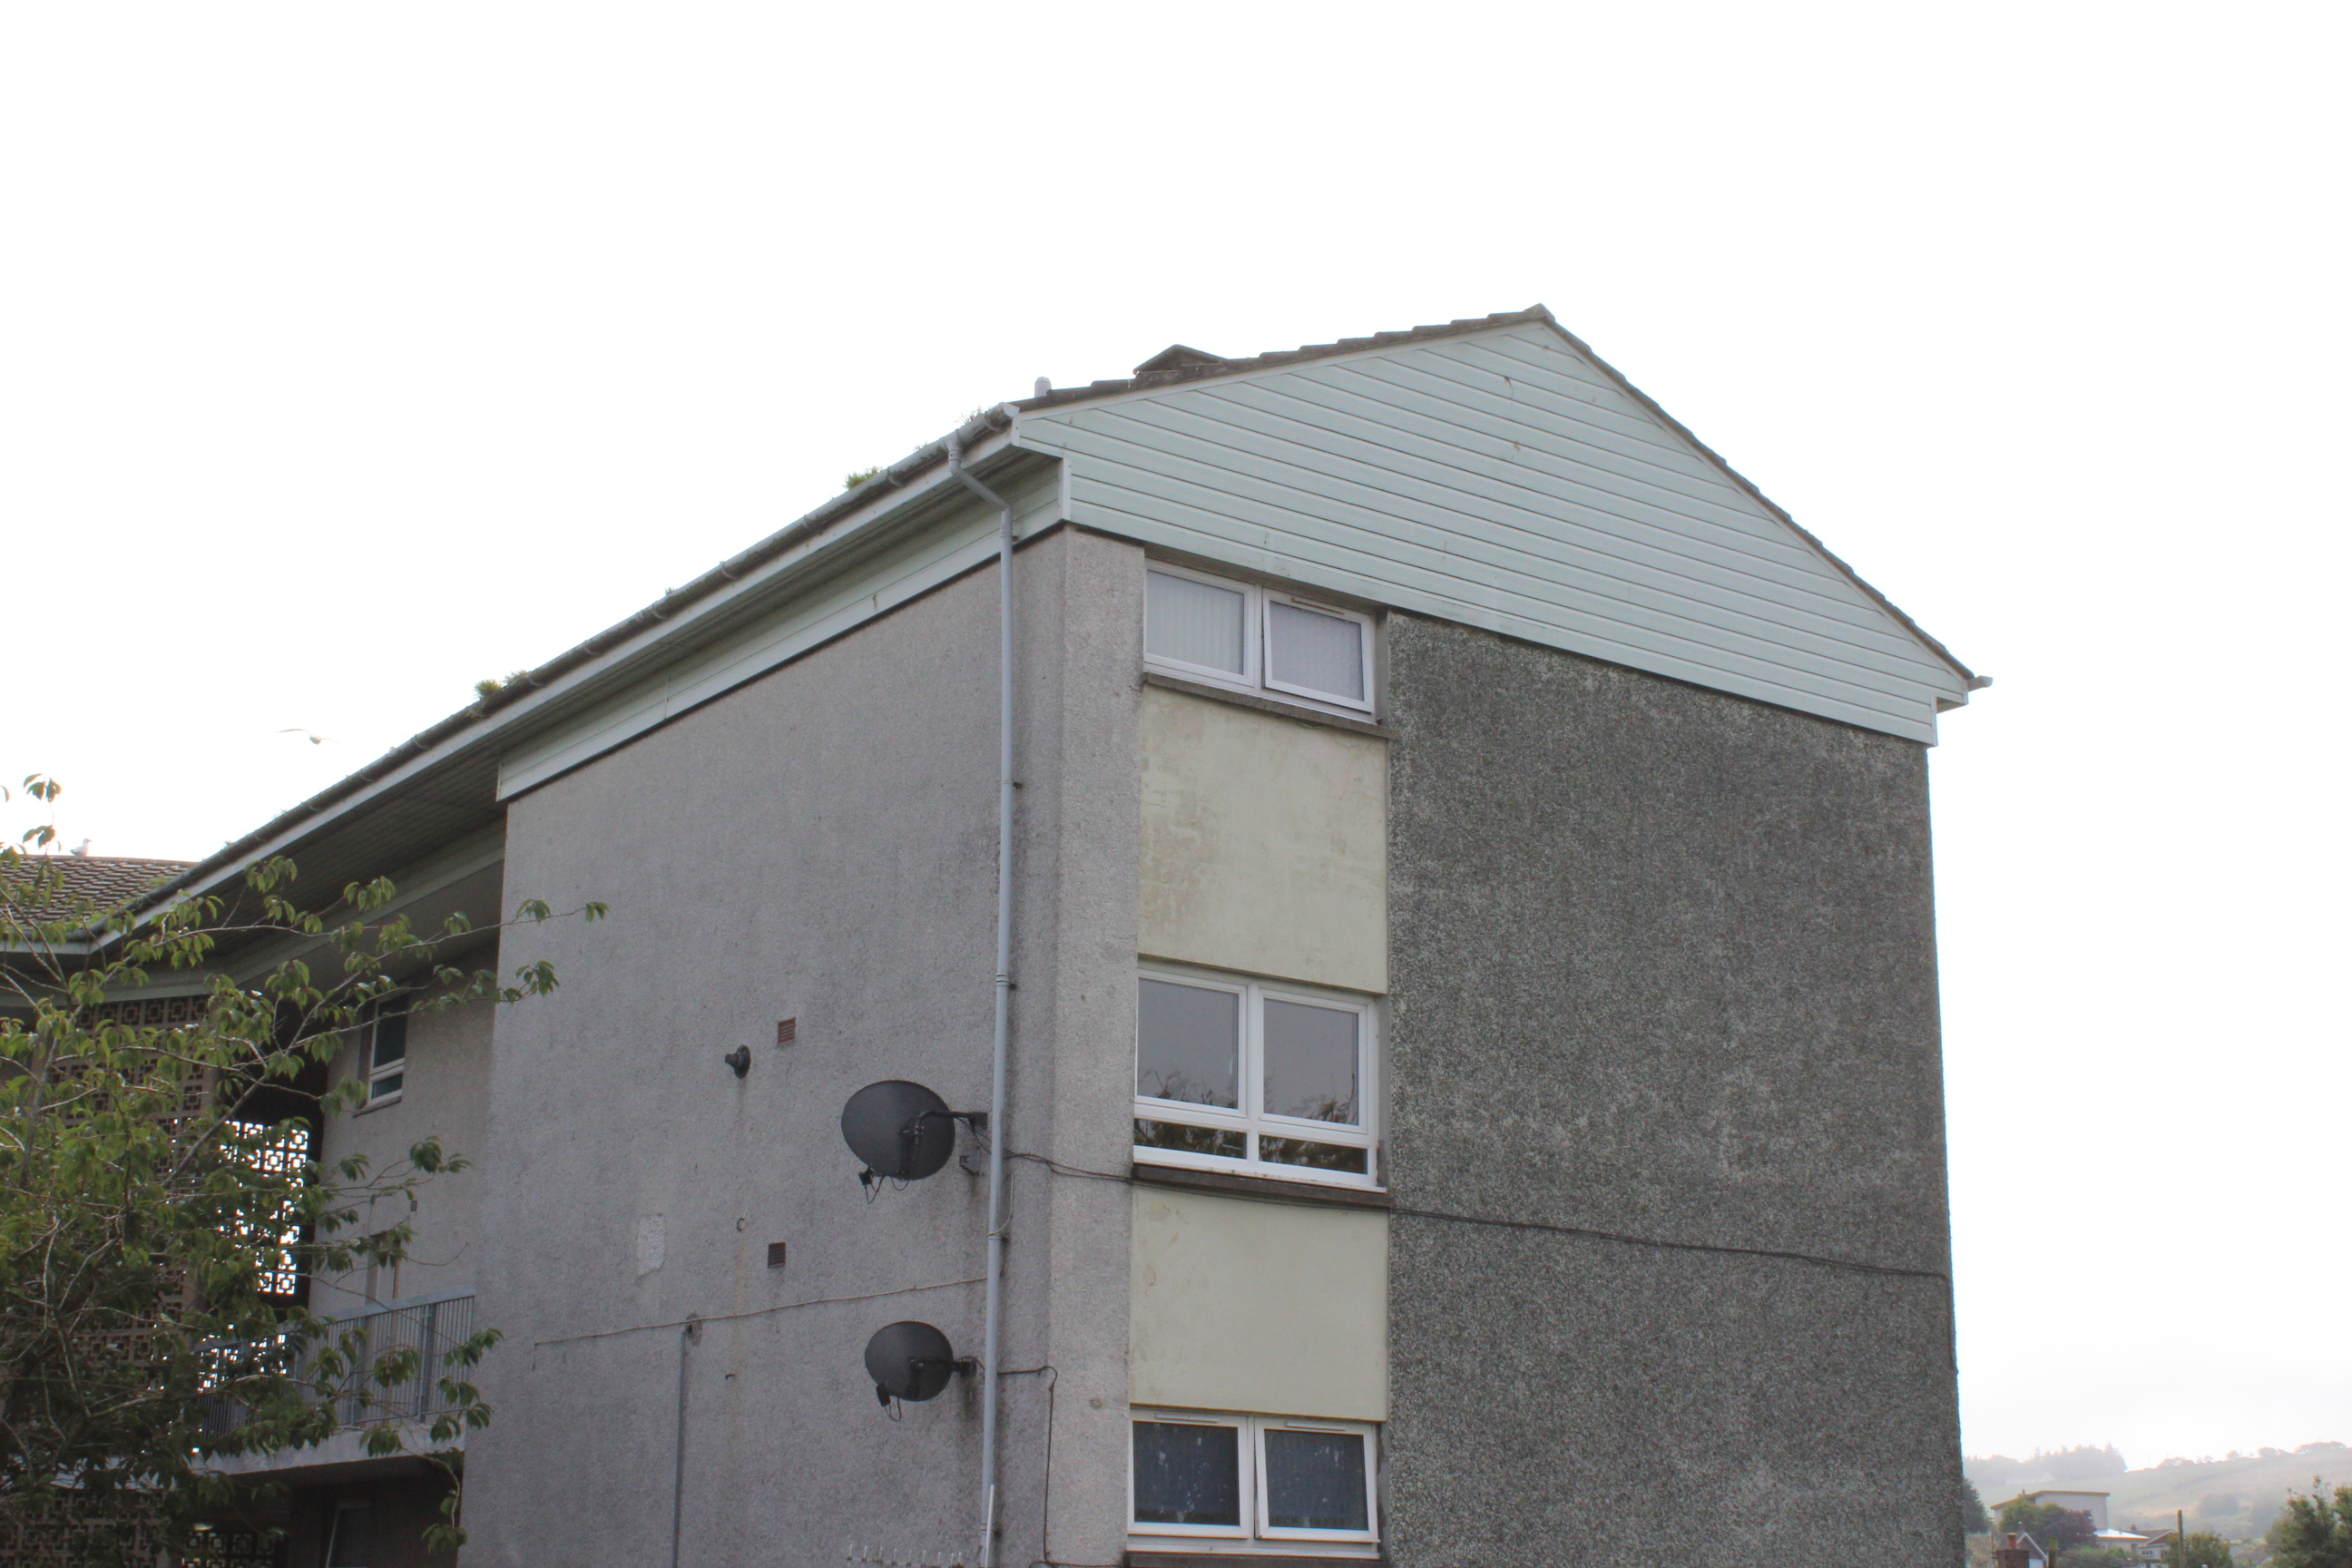 Photograph of 15 Kintyre Court, Stranraer